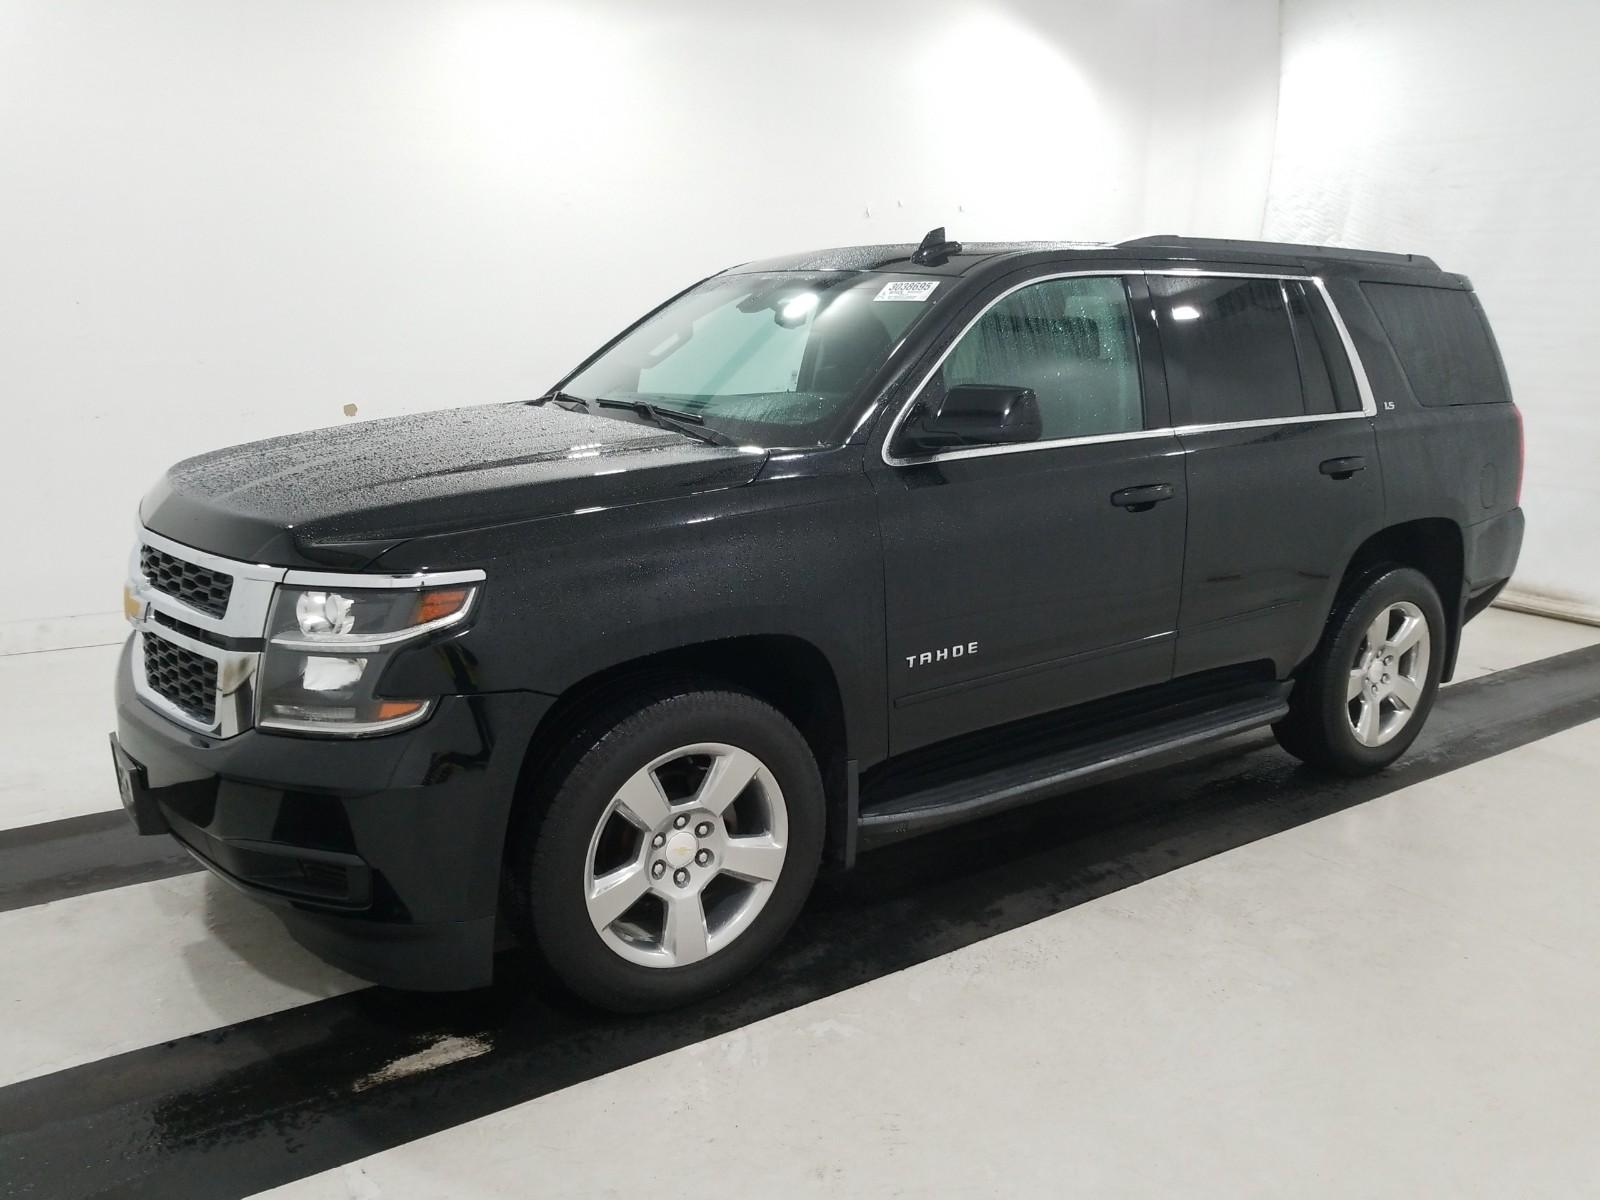 2016 Tahoe For Sale >> 2016 Chevrolet Tahoe For Sale